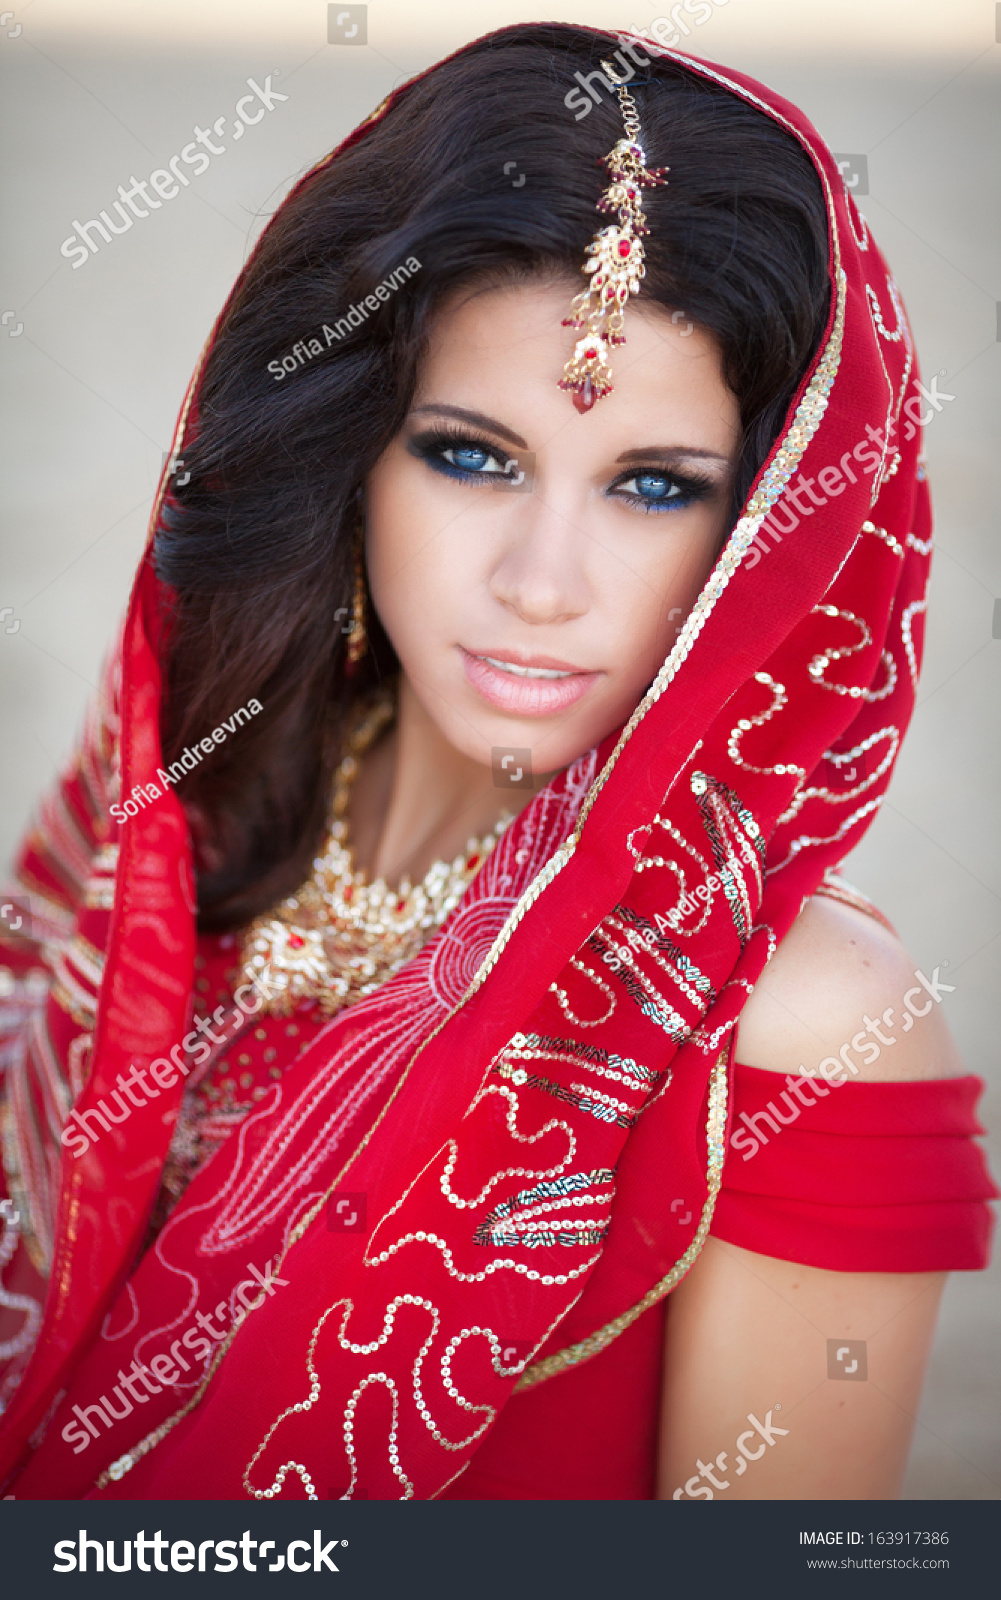 Beautiful Indian Woman Traditional Red Dress Stock Photo (Royalty ...